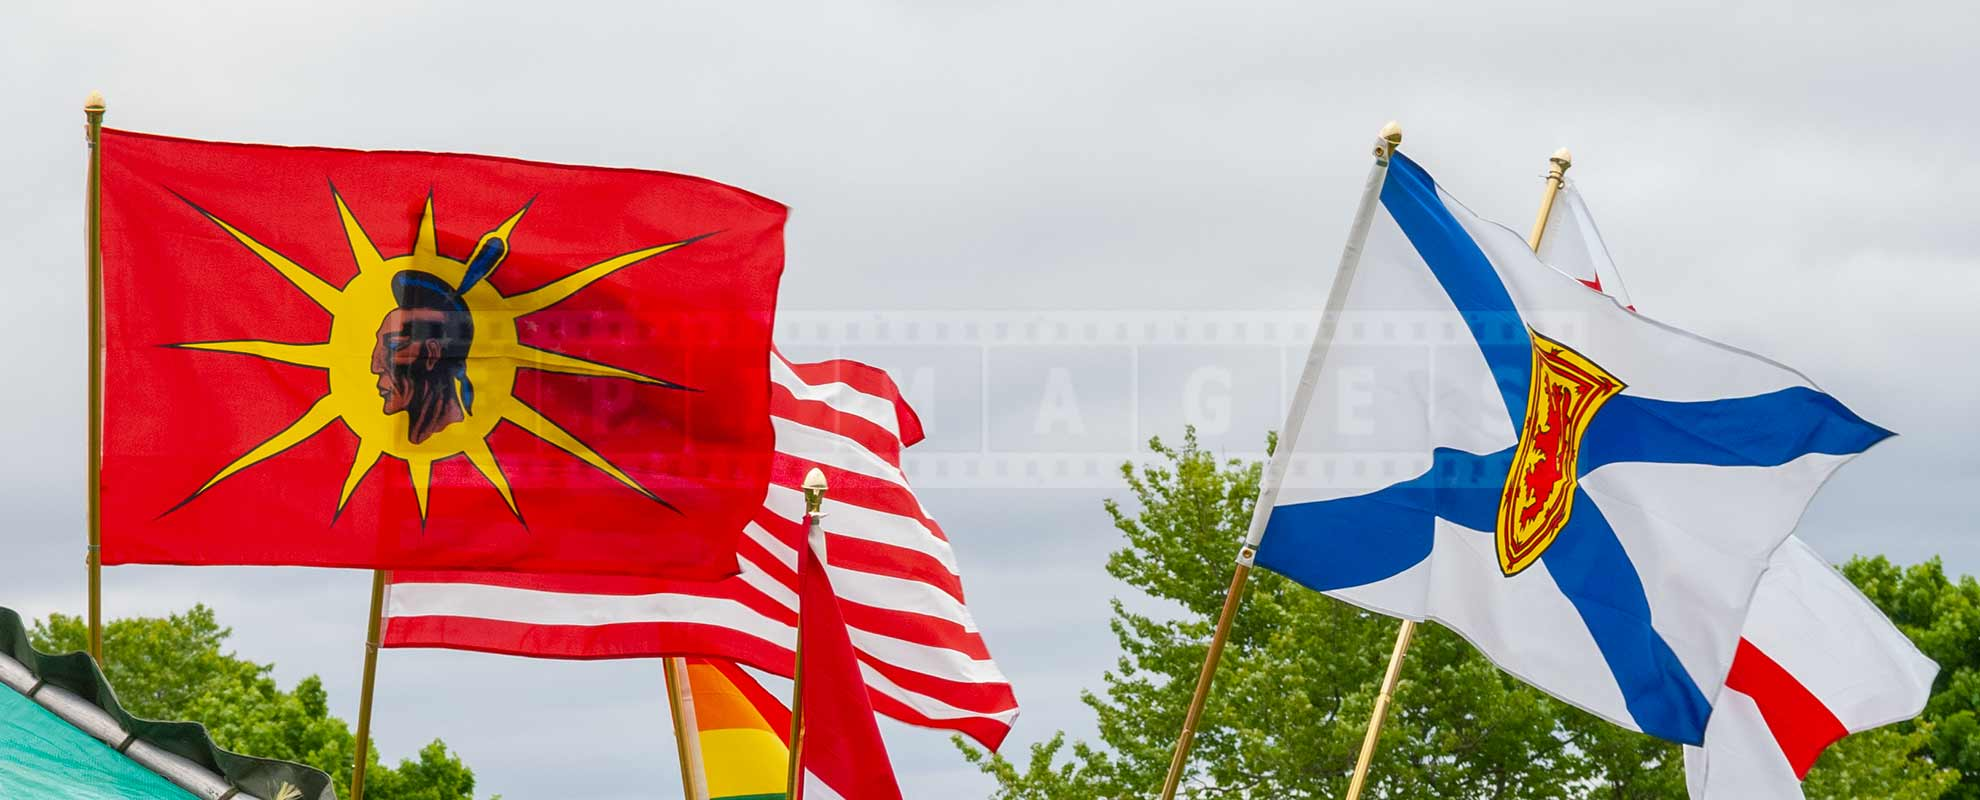 Micmaq red and yellow flag at annual pow wow in Nova Scotia